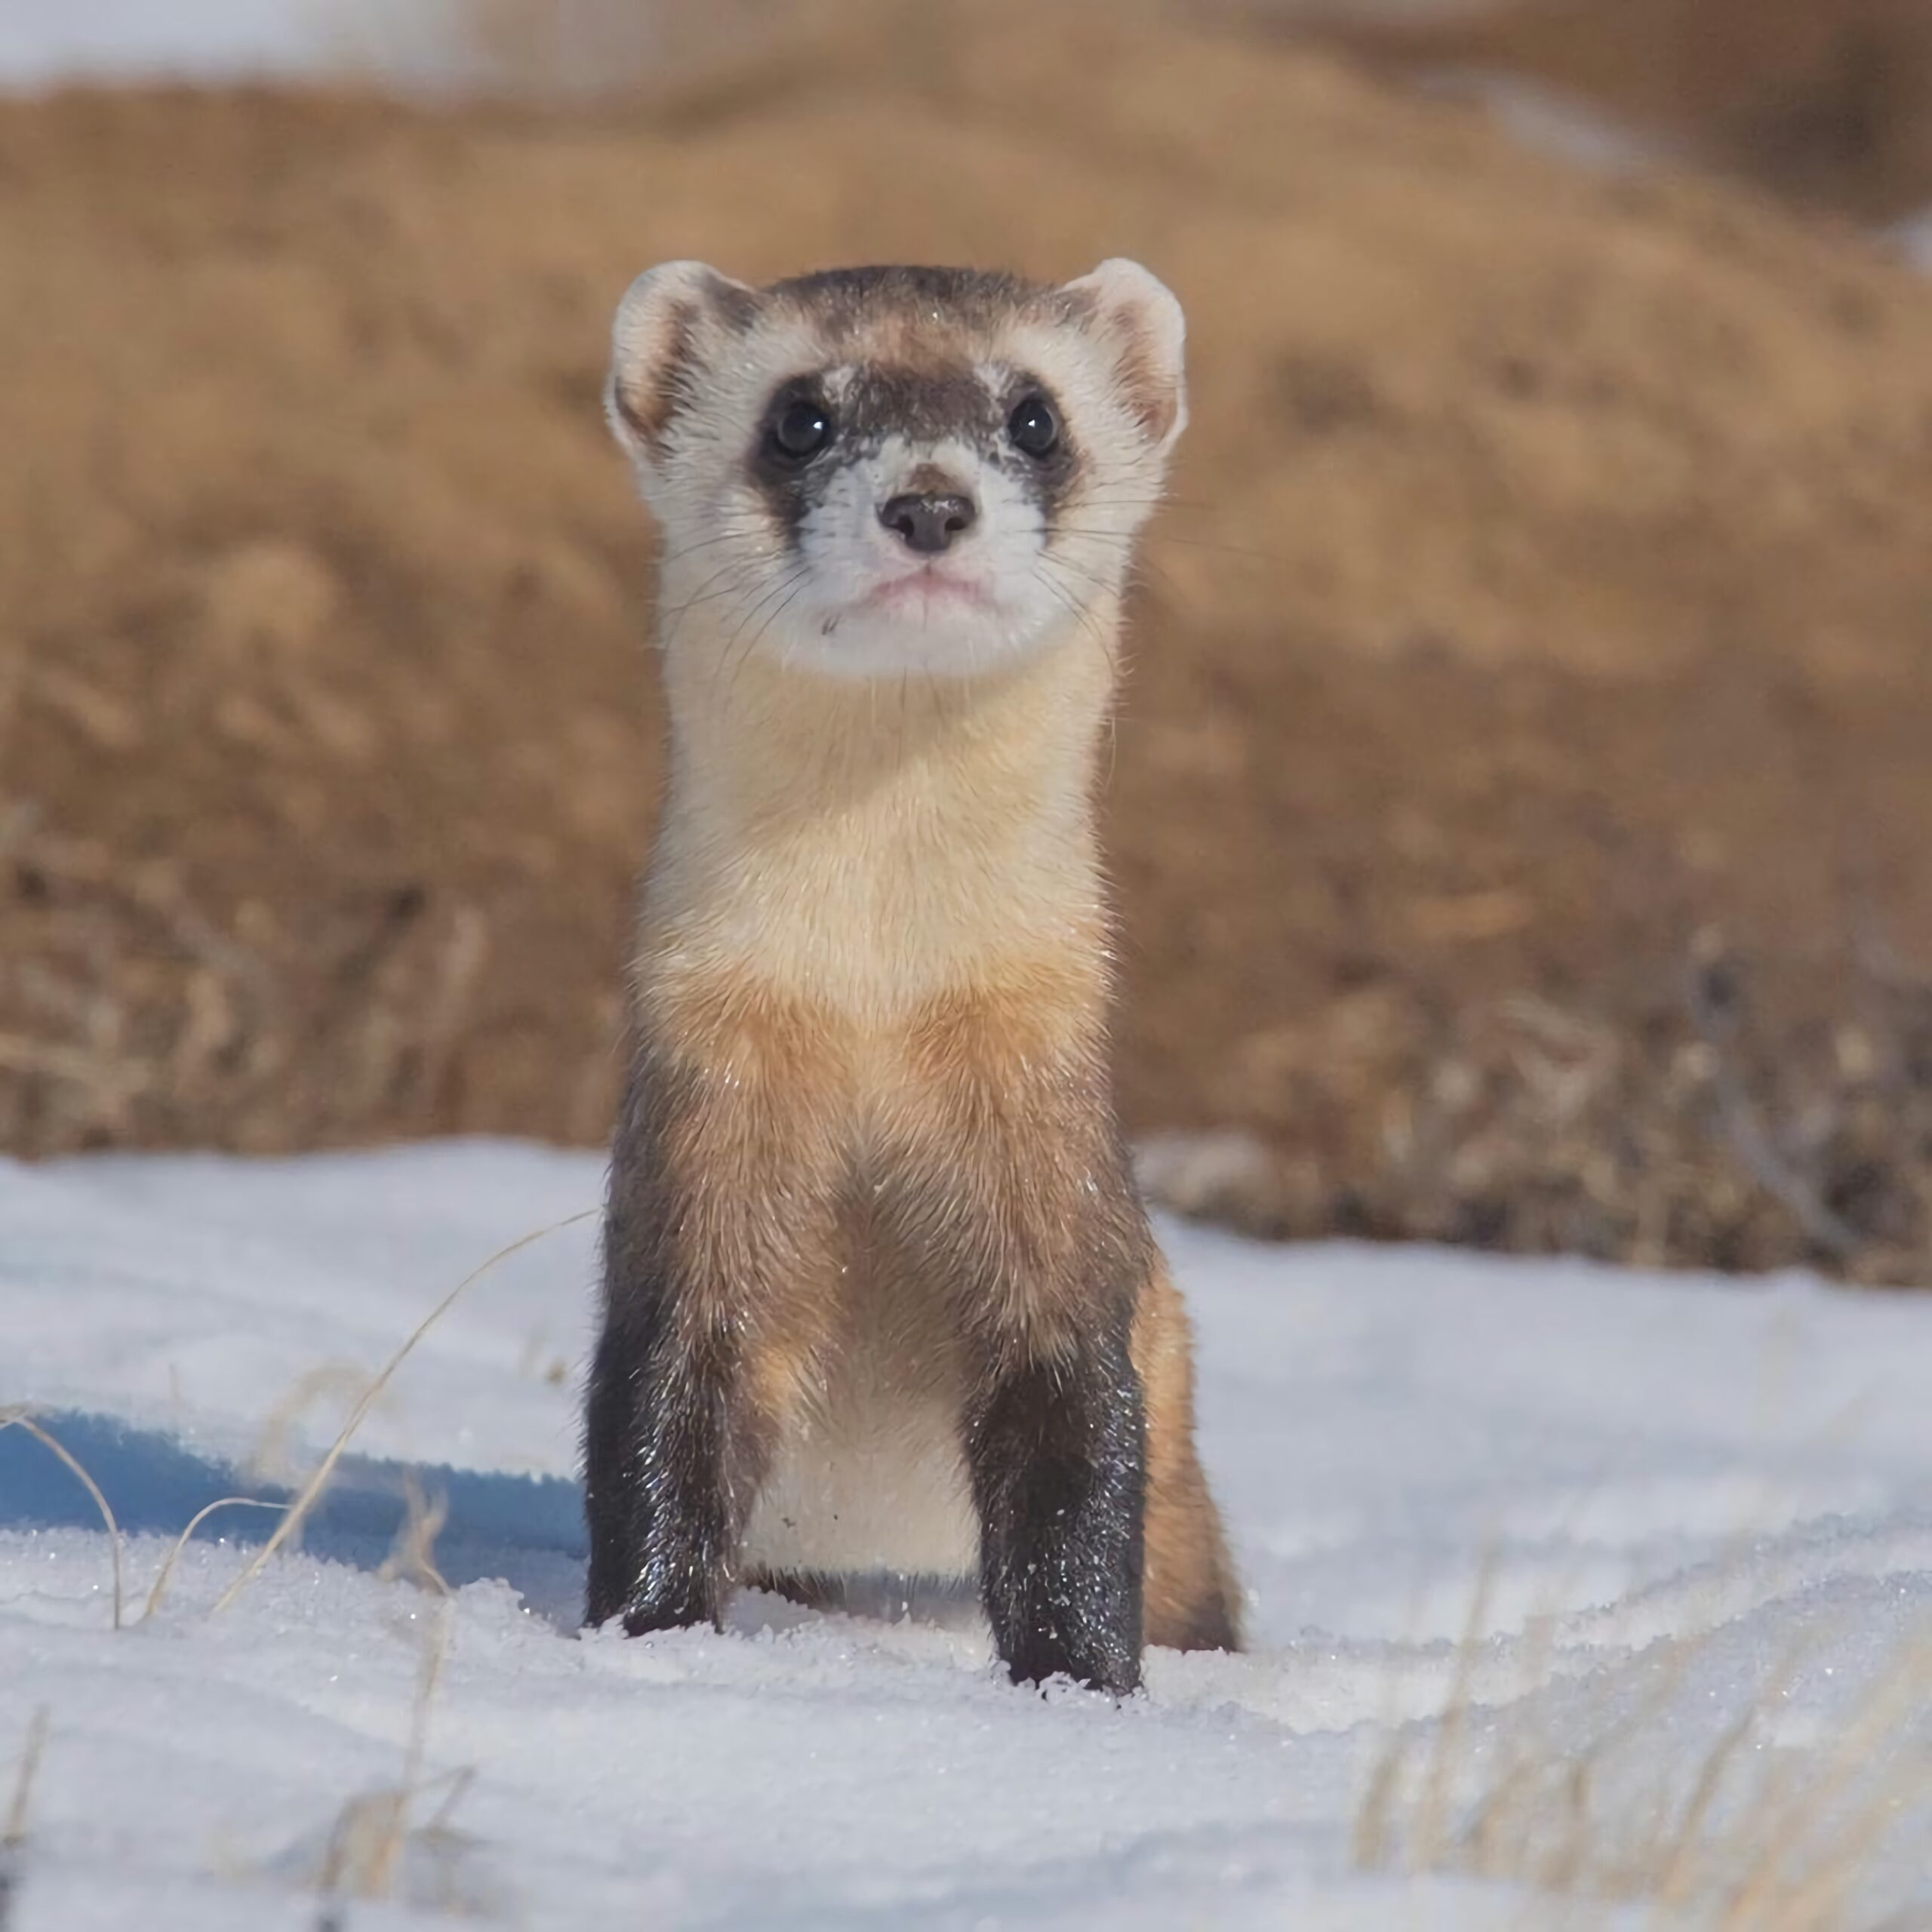 Weasel in snow by Rohan Chang from Unsplash directory